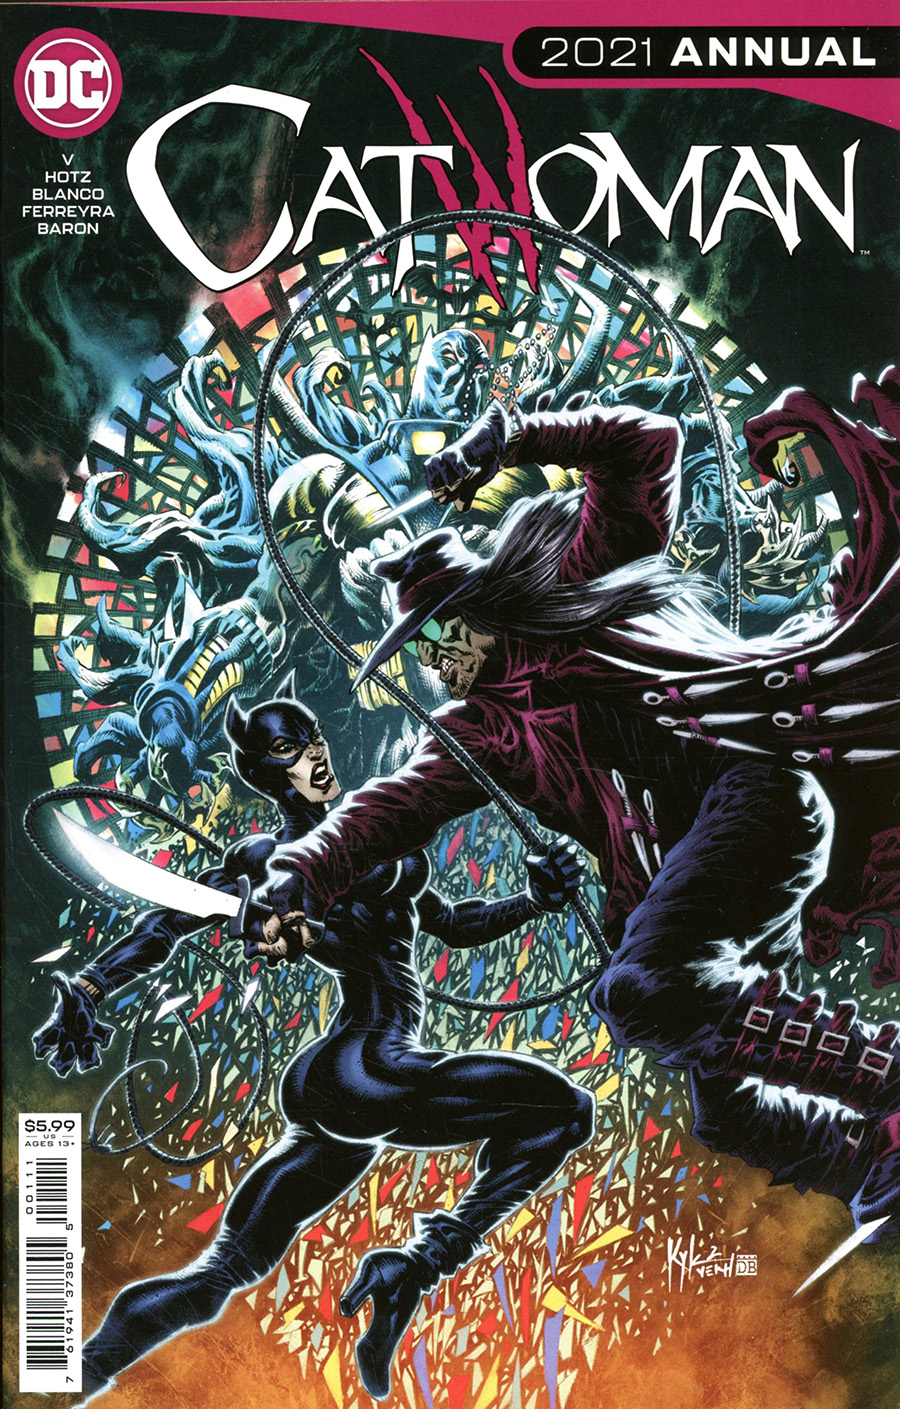 Catwoman Vol 5 Annual 2021 #1 Cover A Regular Kyle Hotz Cover